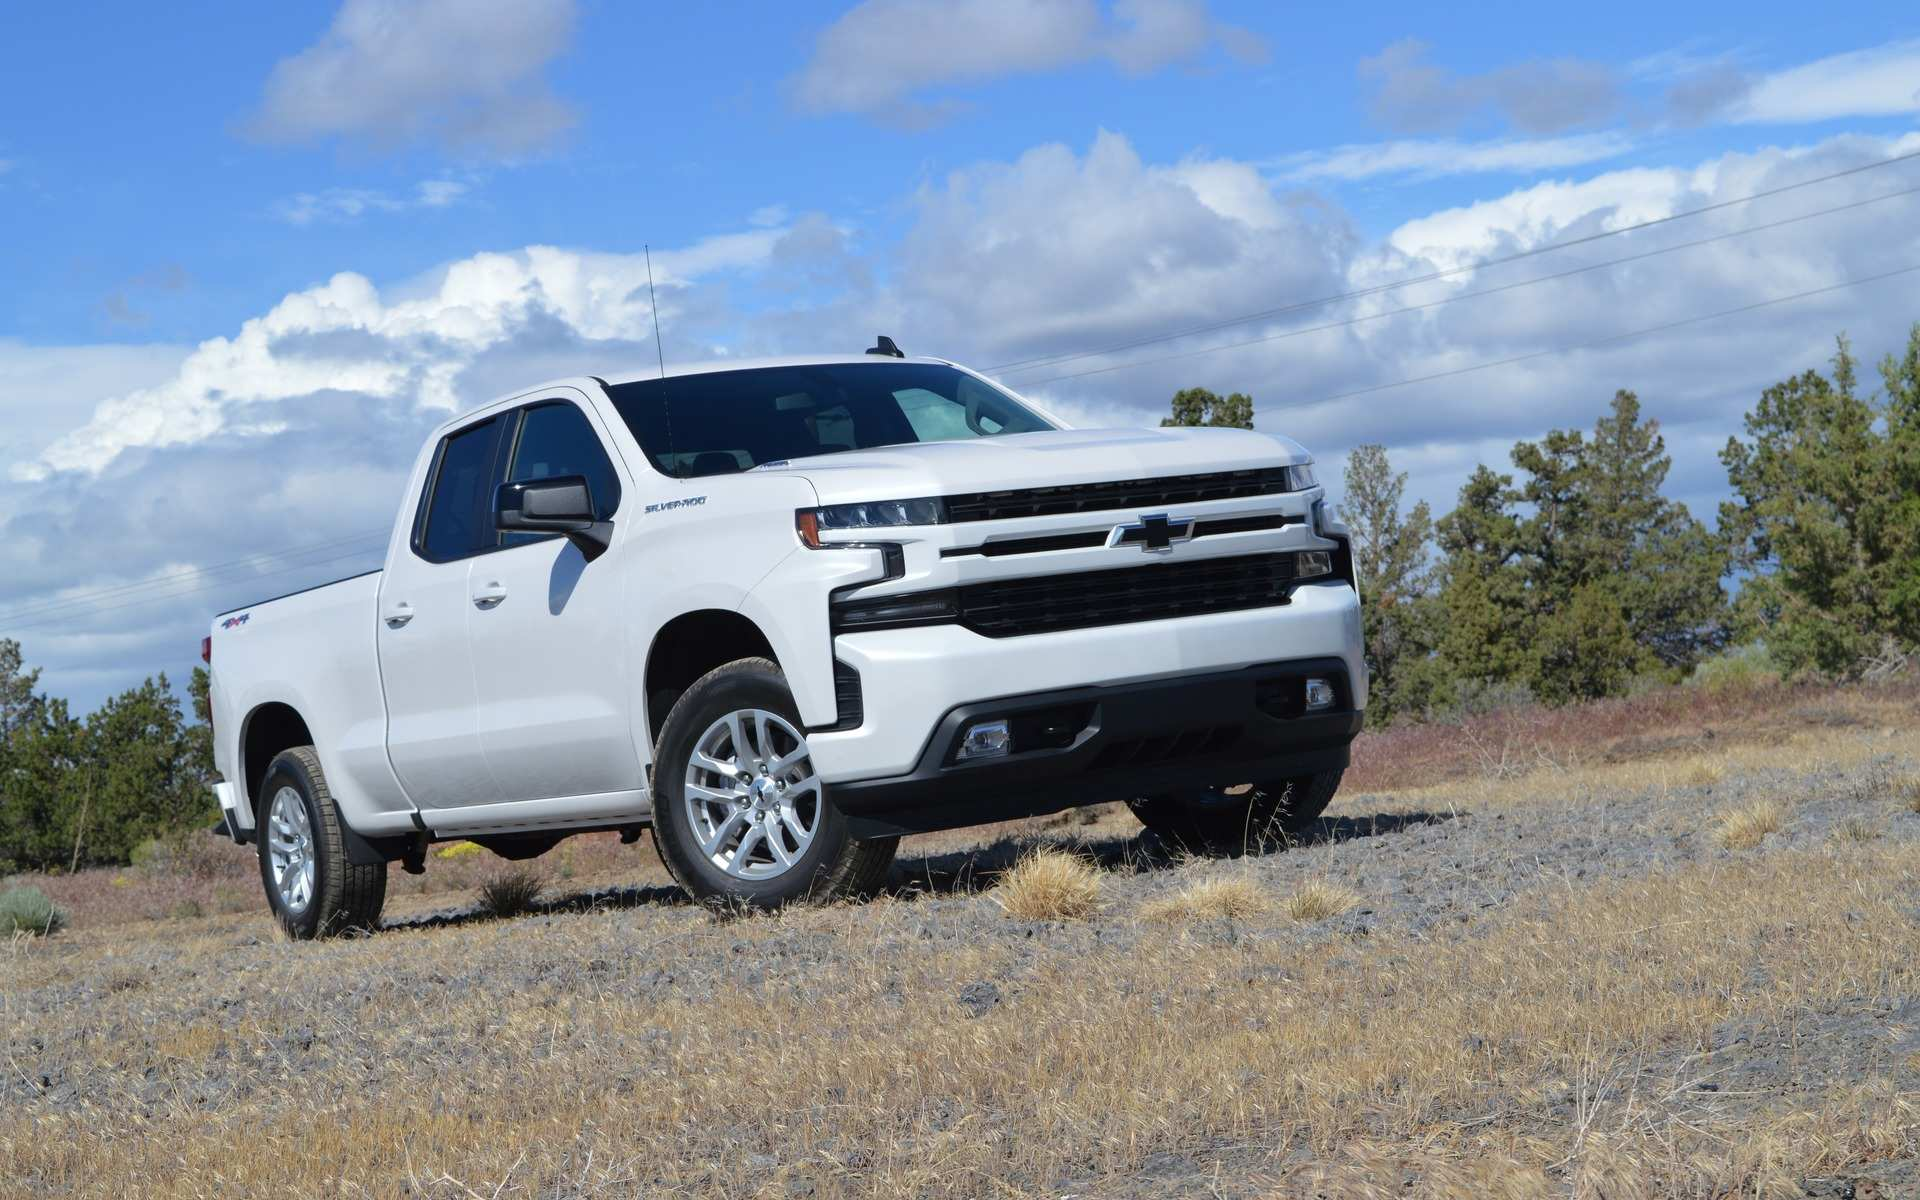 62 All New Chevrolet Duramax 2020 Spesification by Chevrolet Duramax 2020